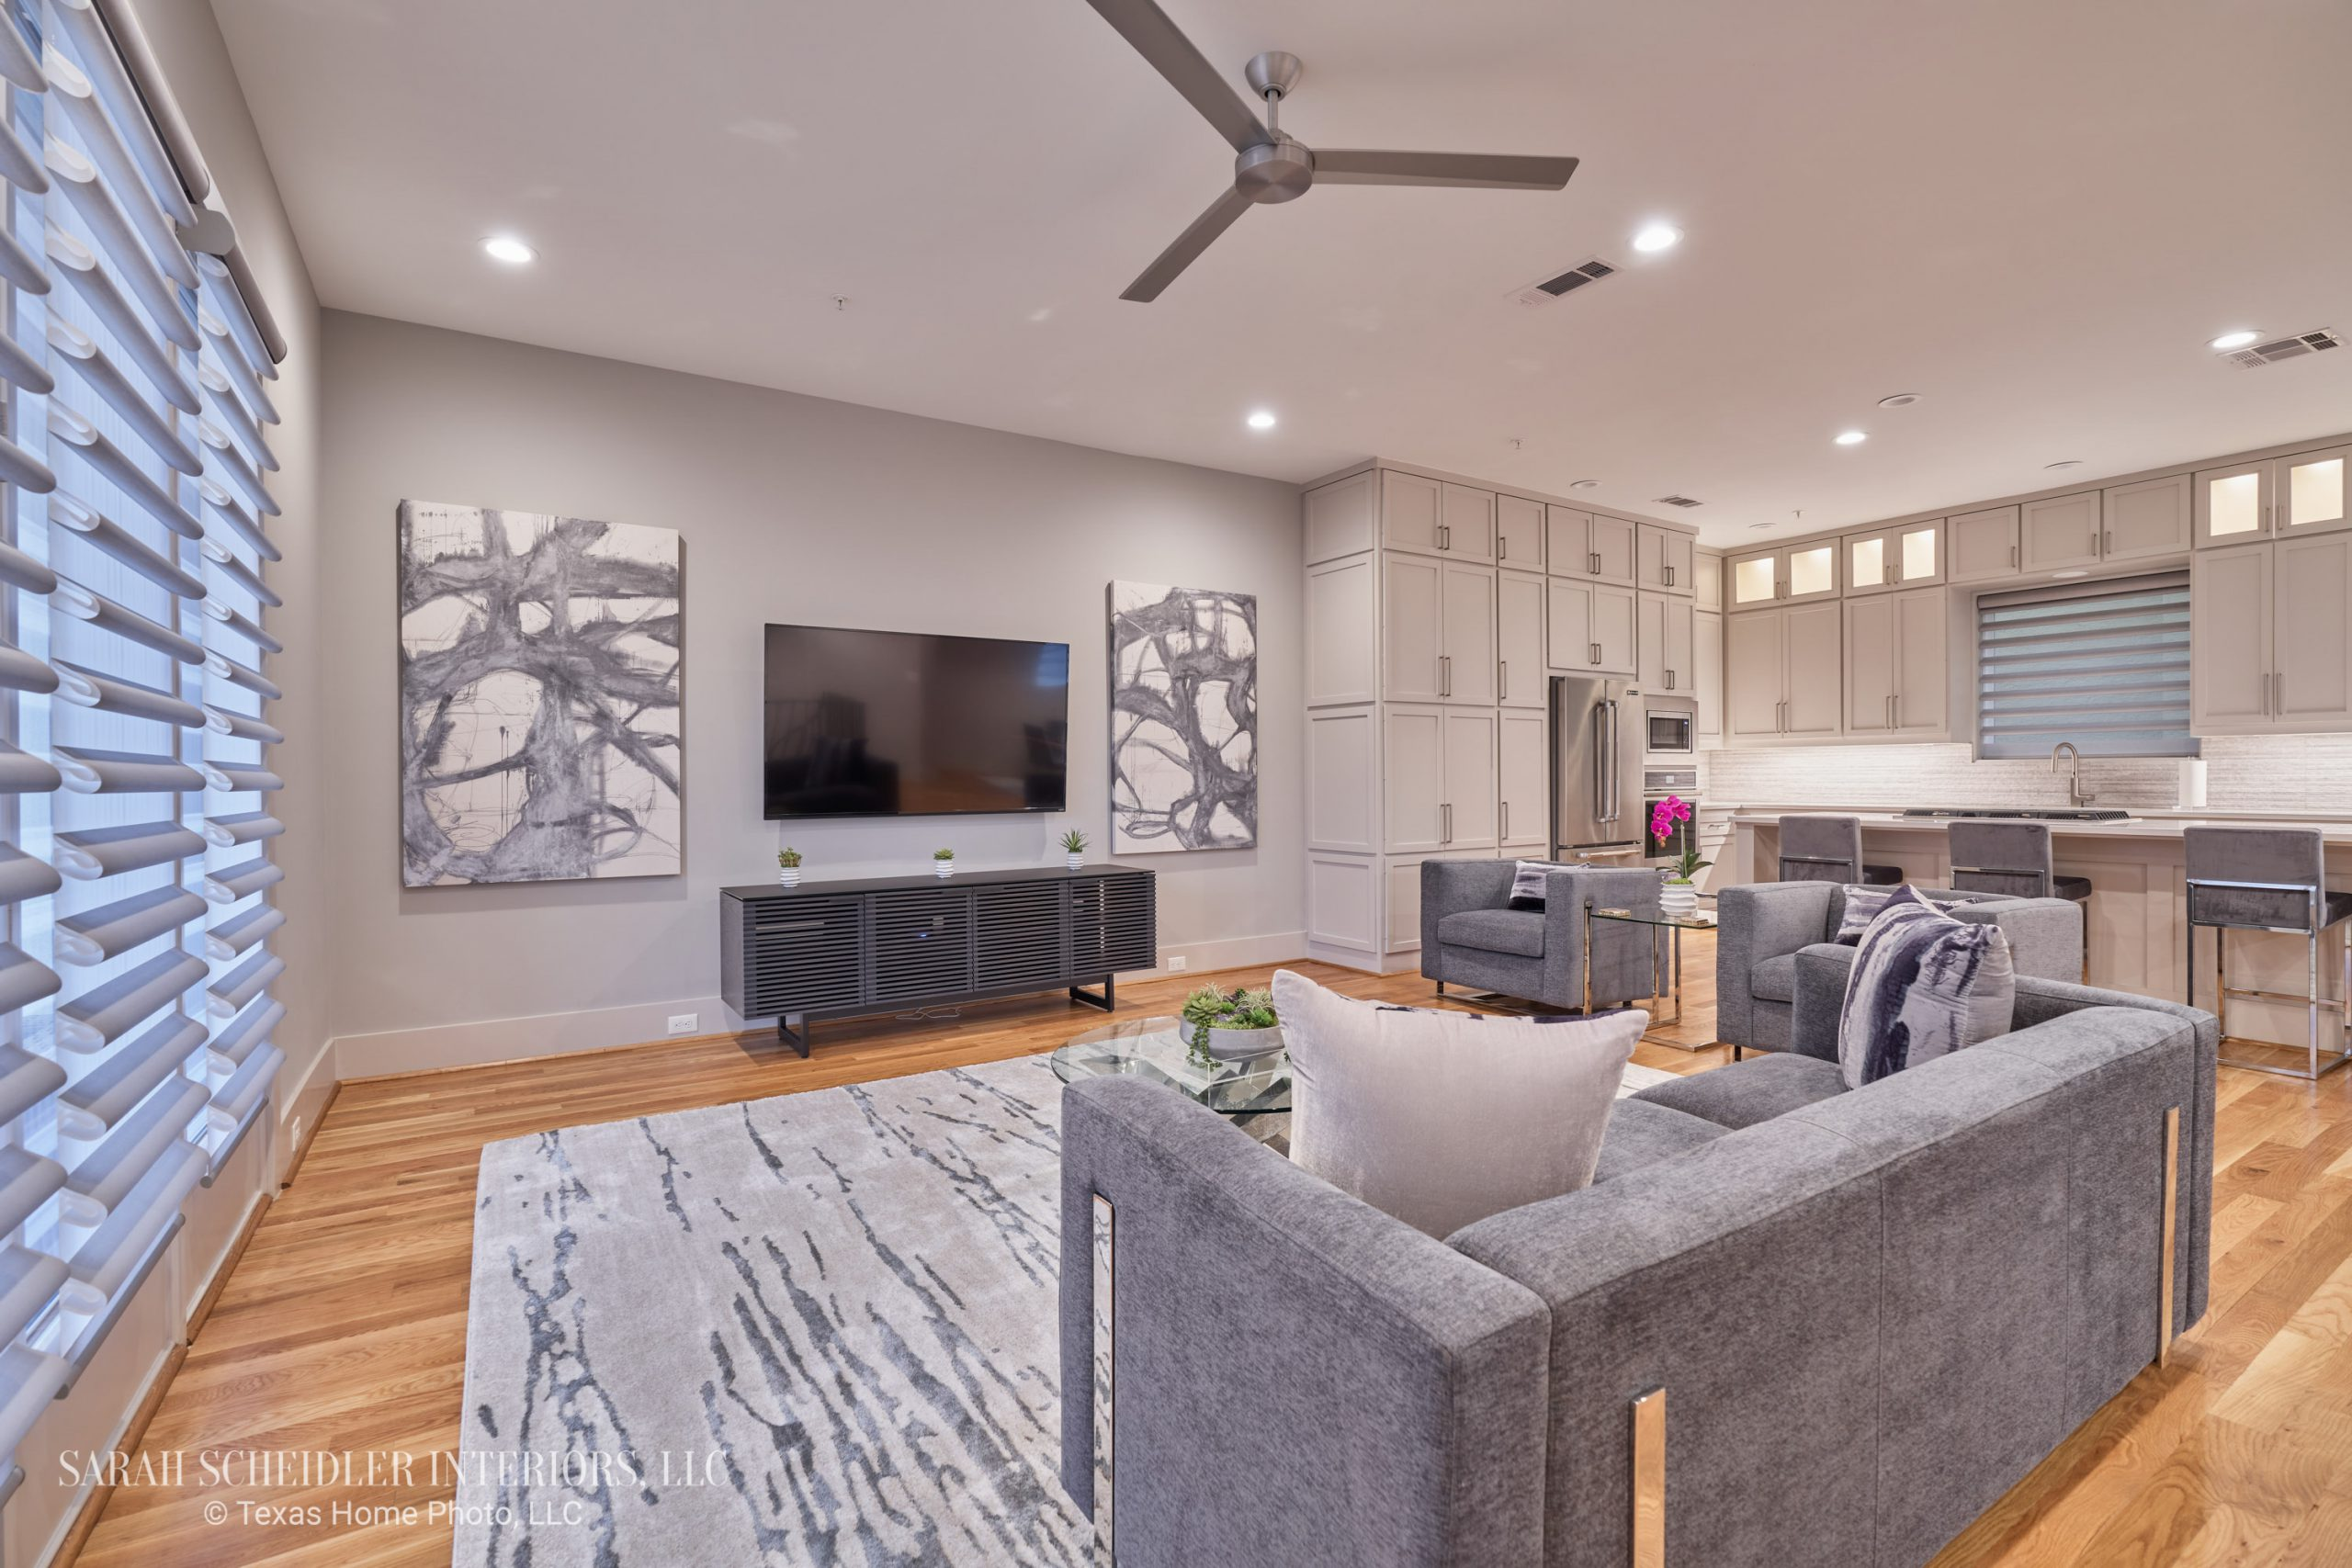 Modern Open-Concept Living Room and Kitchen Designs